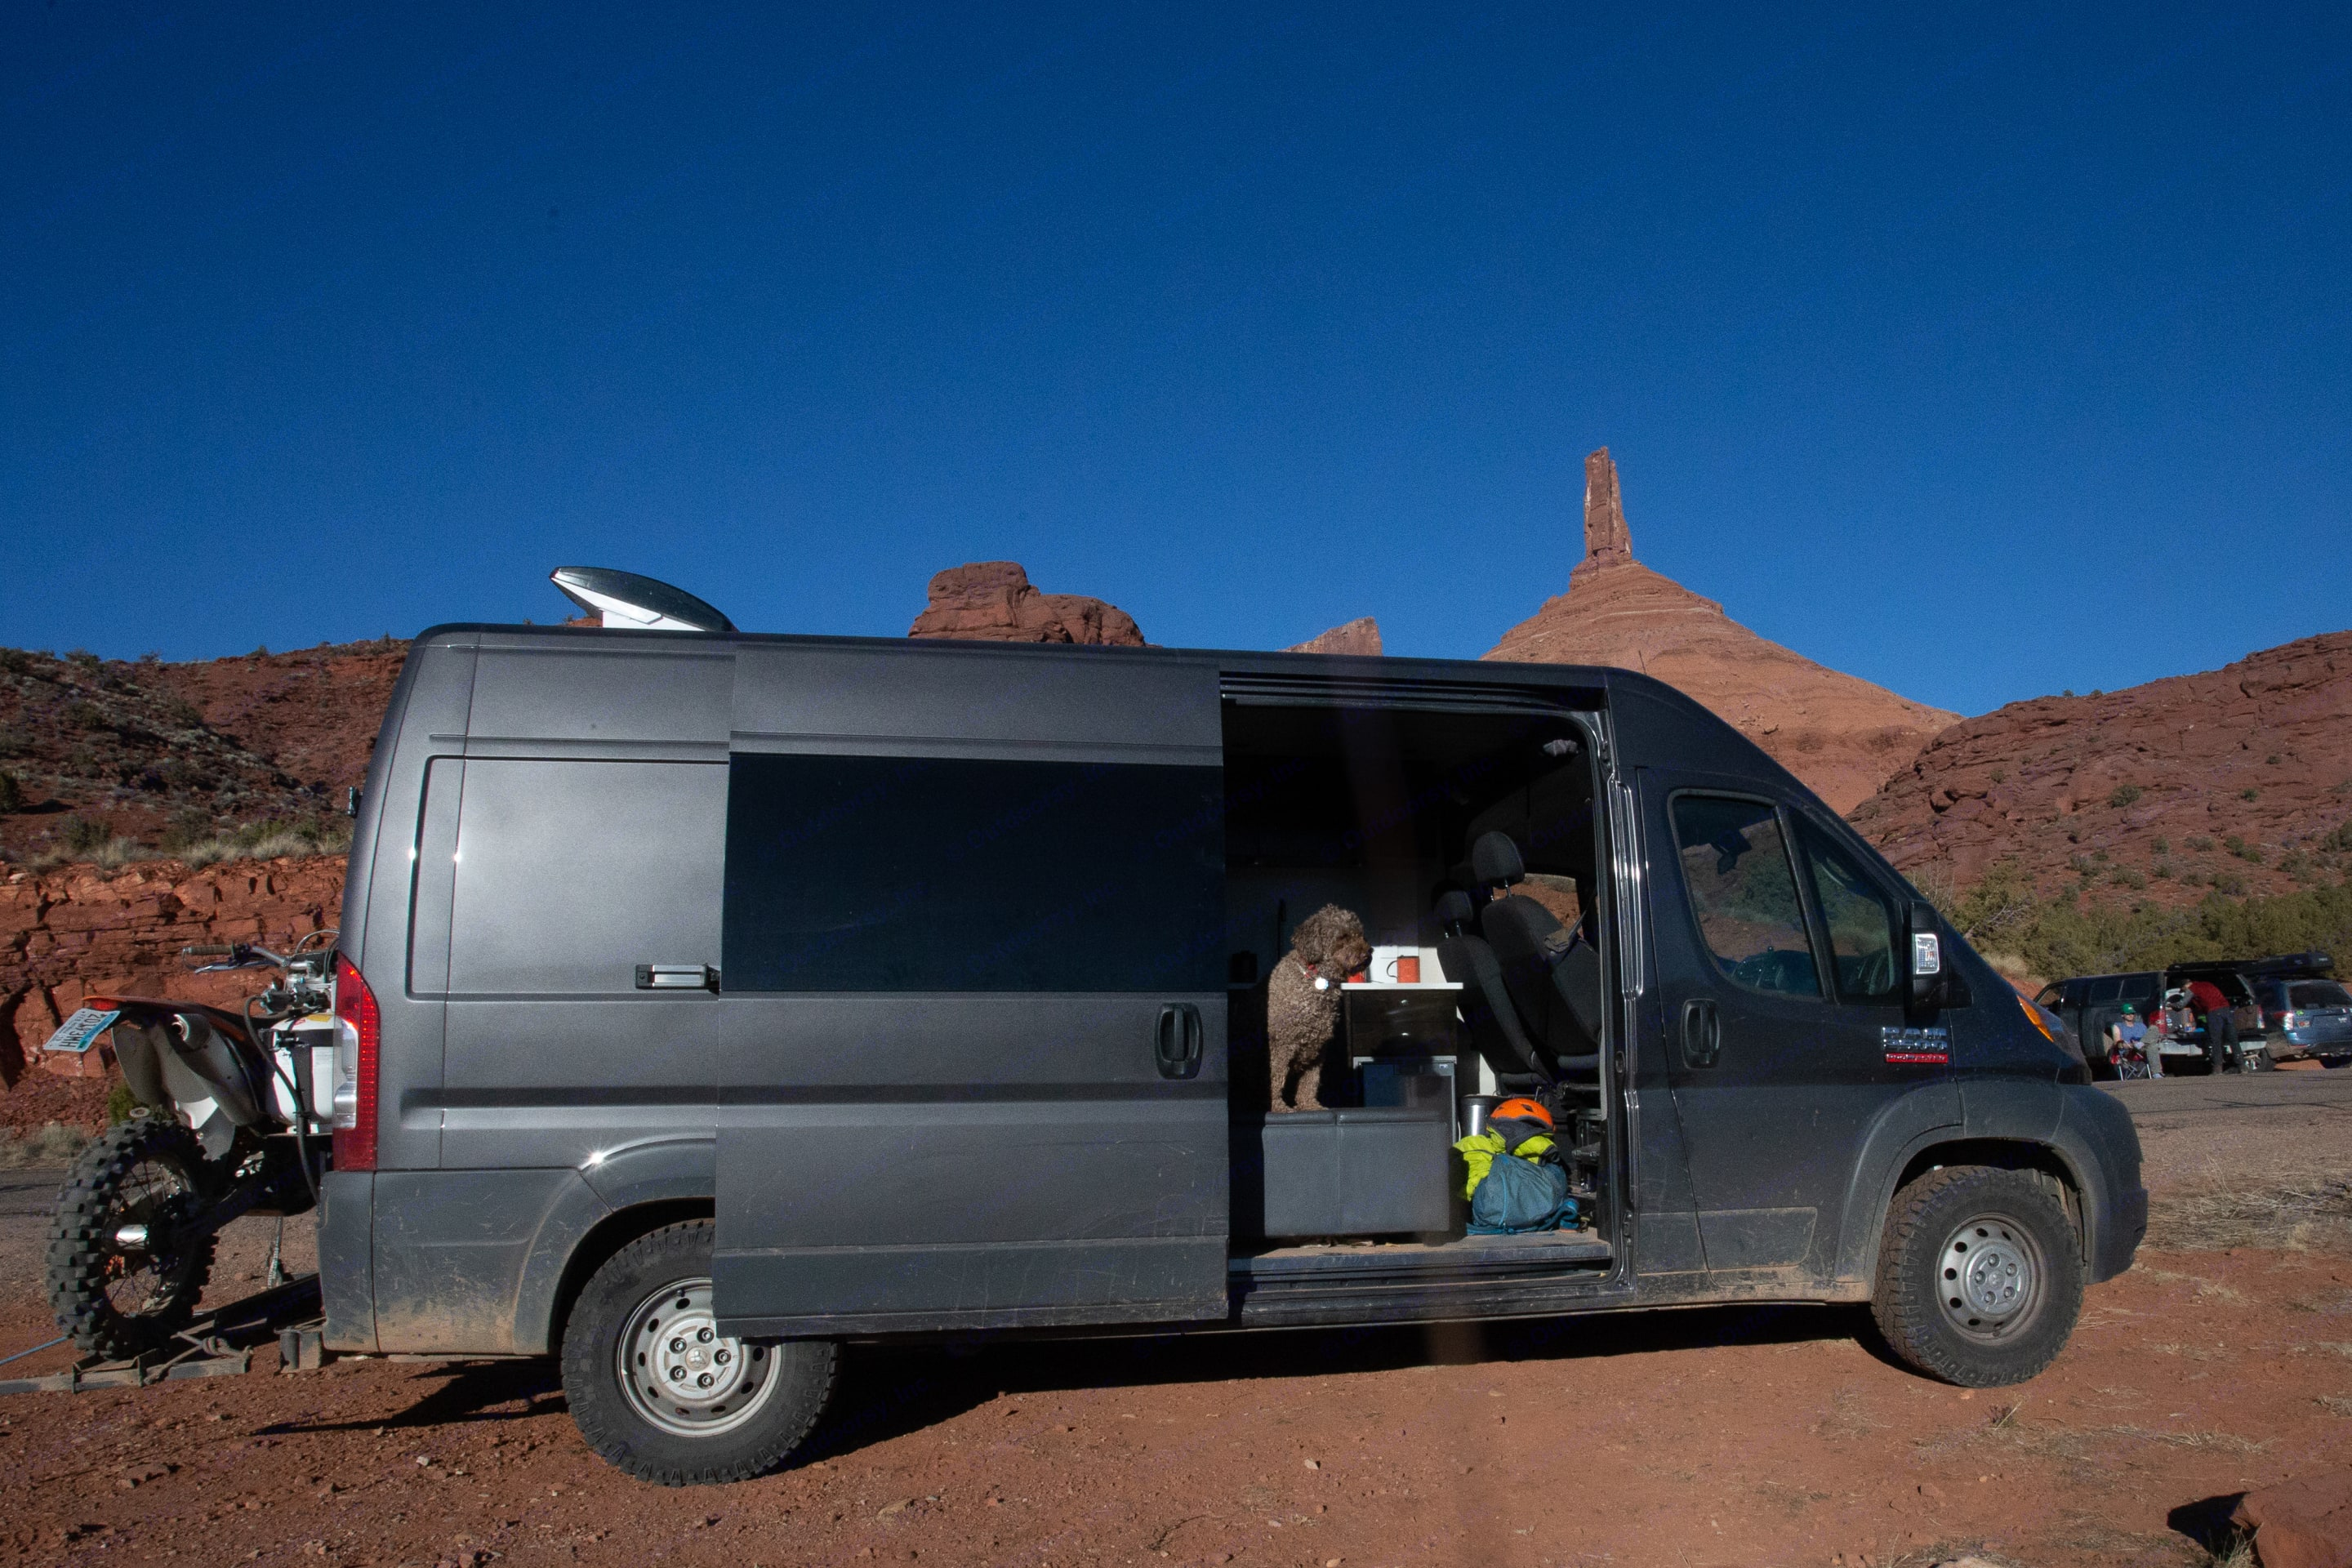 fans keep the van cool in the desert. Quality Adventure base 2018